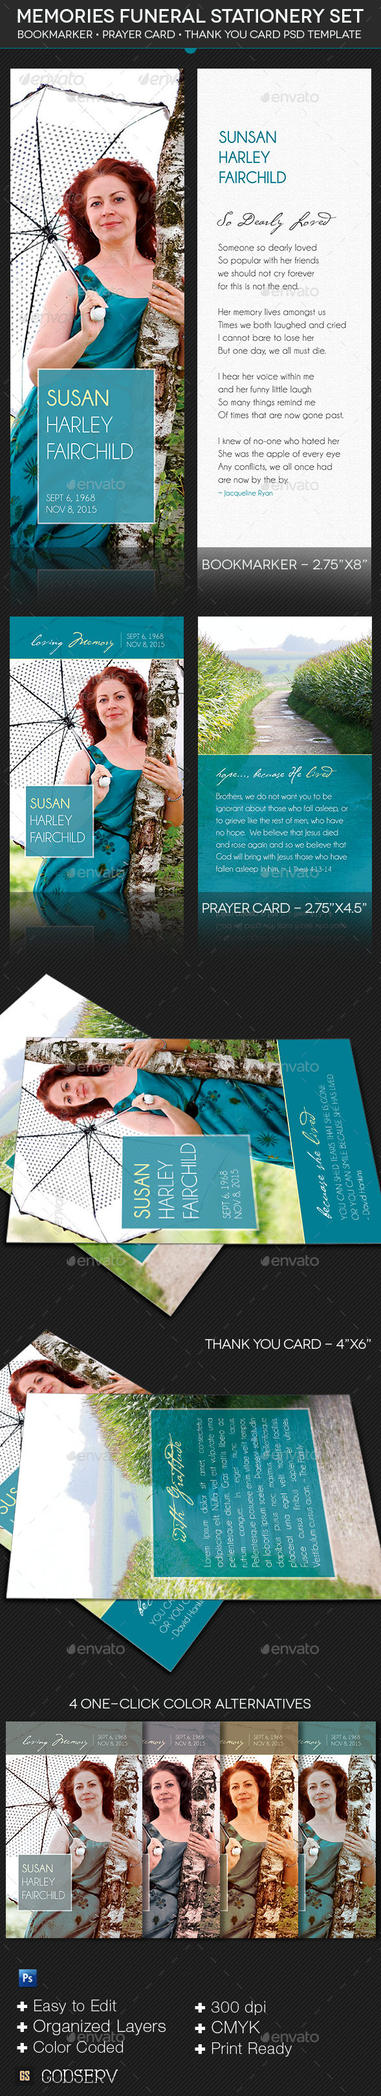 Memories Funeral Stationery Template Set by Godserv